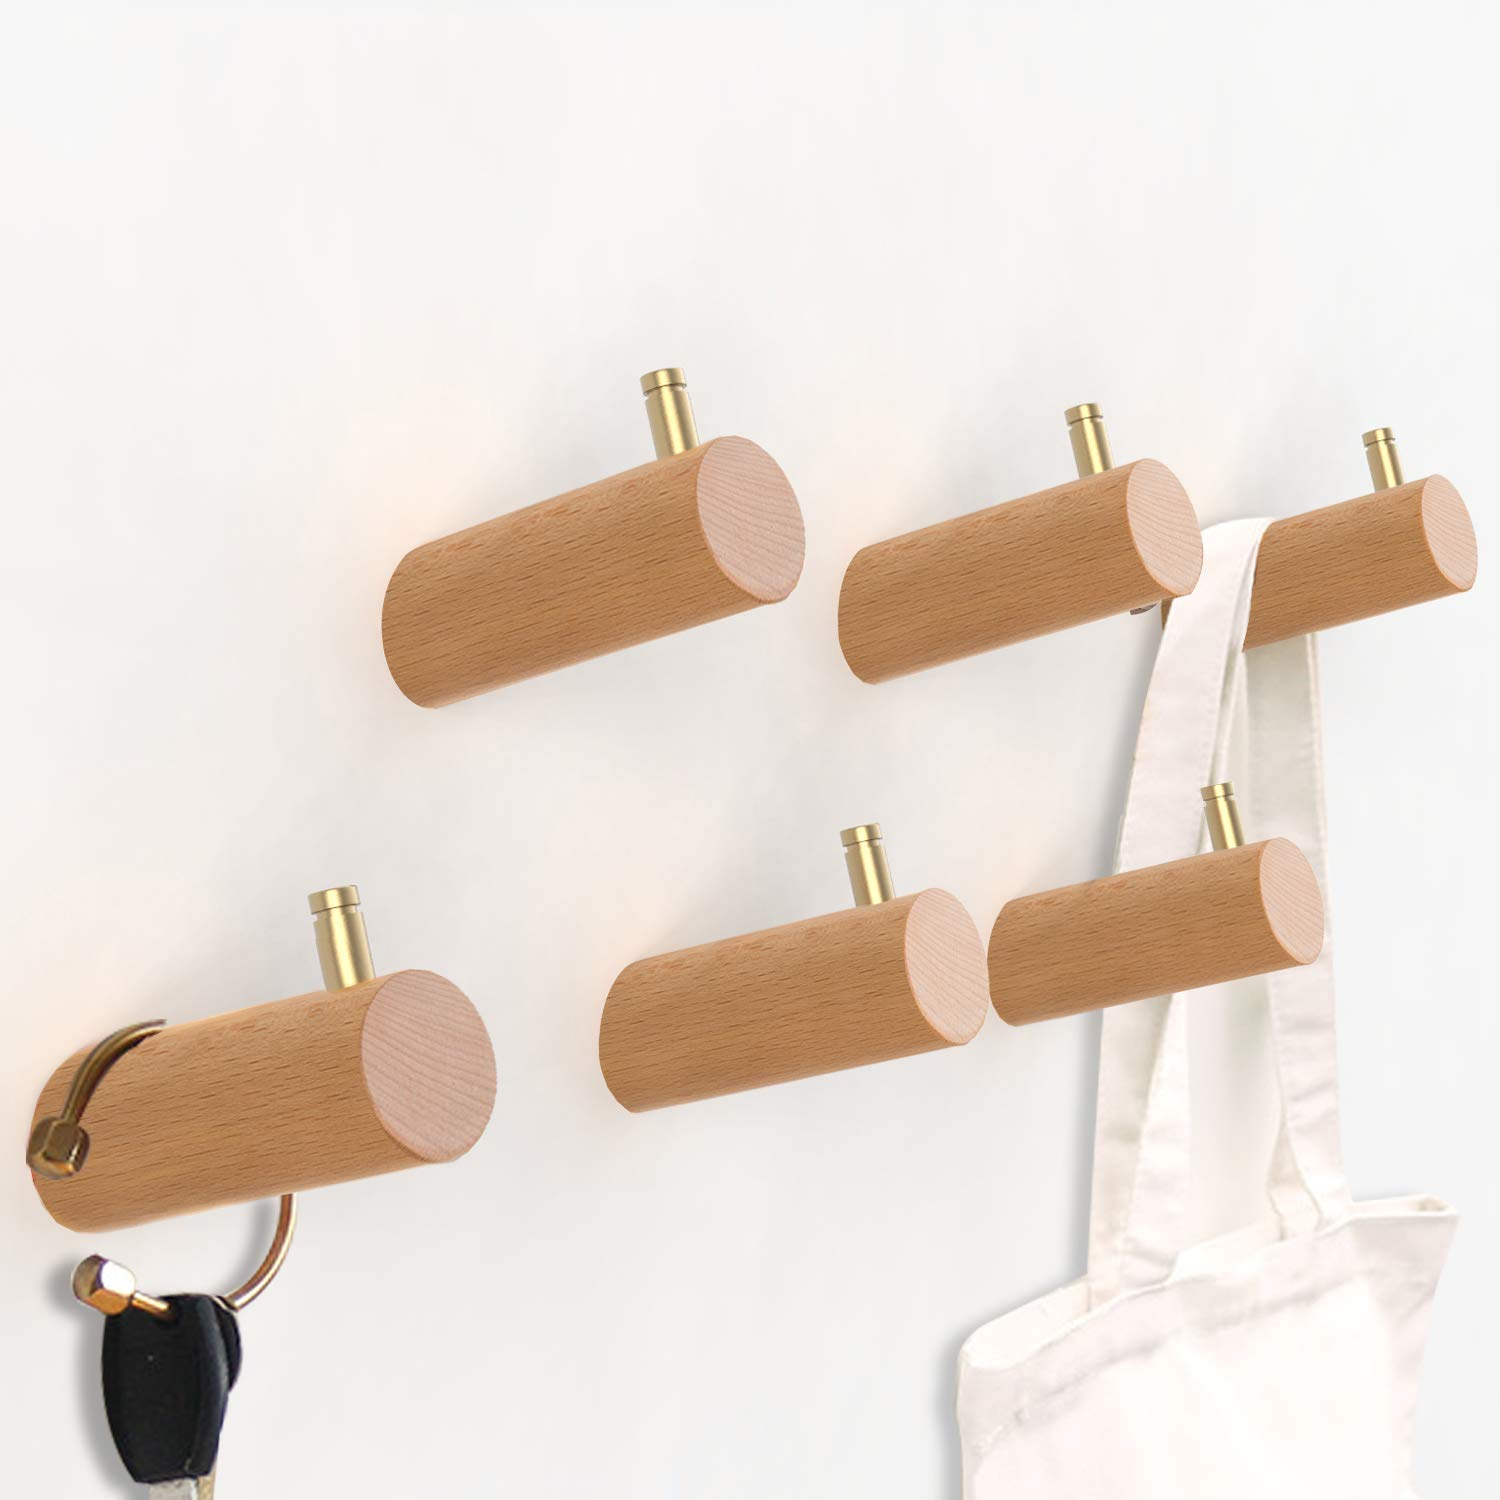 ETECHMART Wood Coat Hooks for Wall, 2021 Updated 6PCS Entryway Coat Rack Wall Mounted, Modern Natural Wooden Towel Hanger with Solid Brass on The Top for Hanging Keys, Plants, Clothes (Beech, 3 Inch)